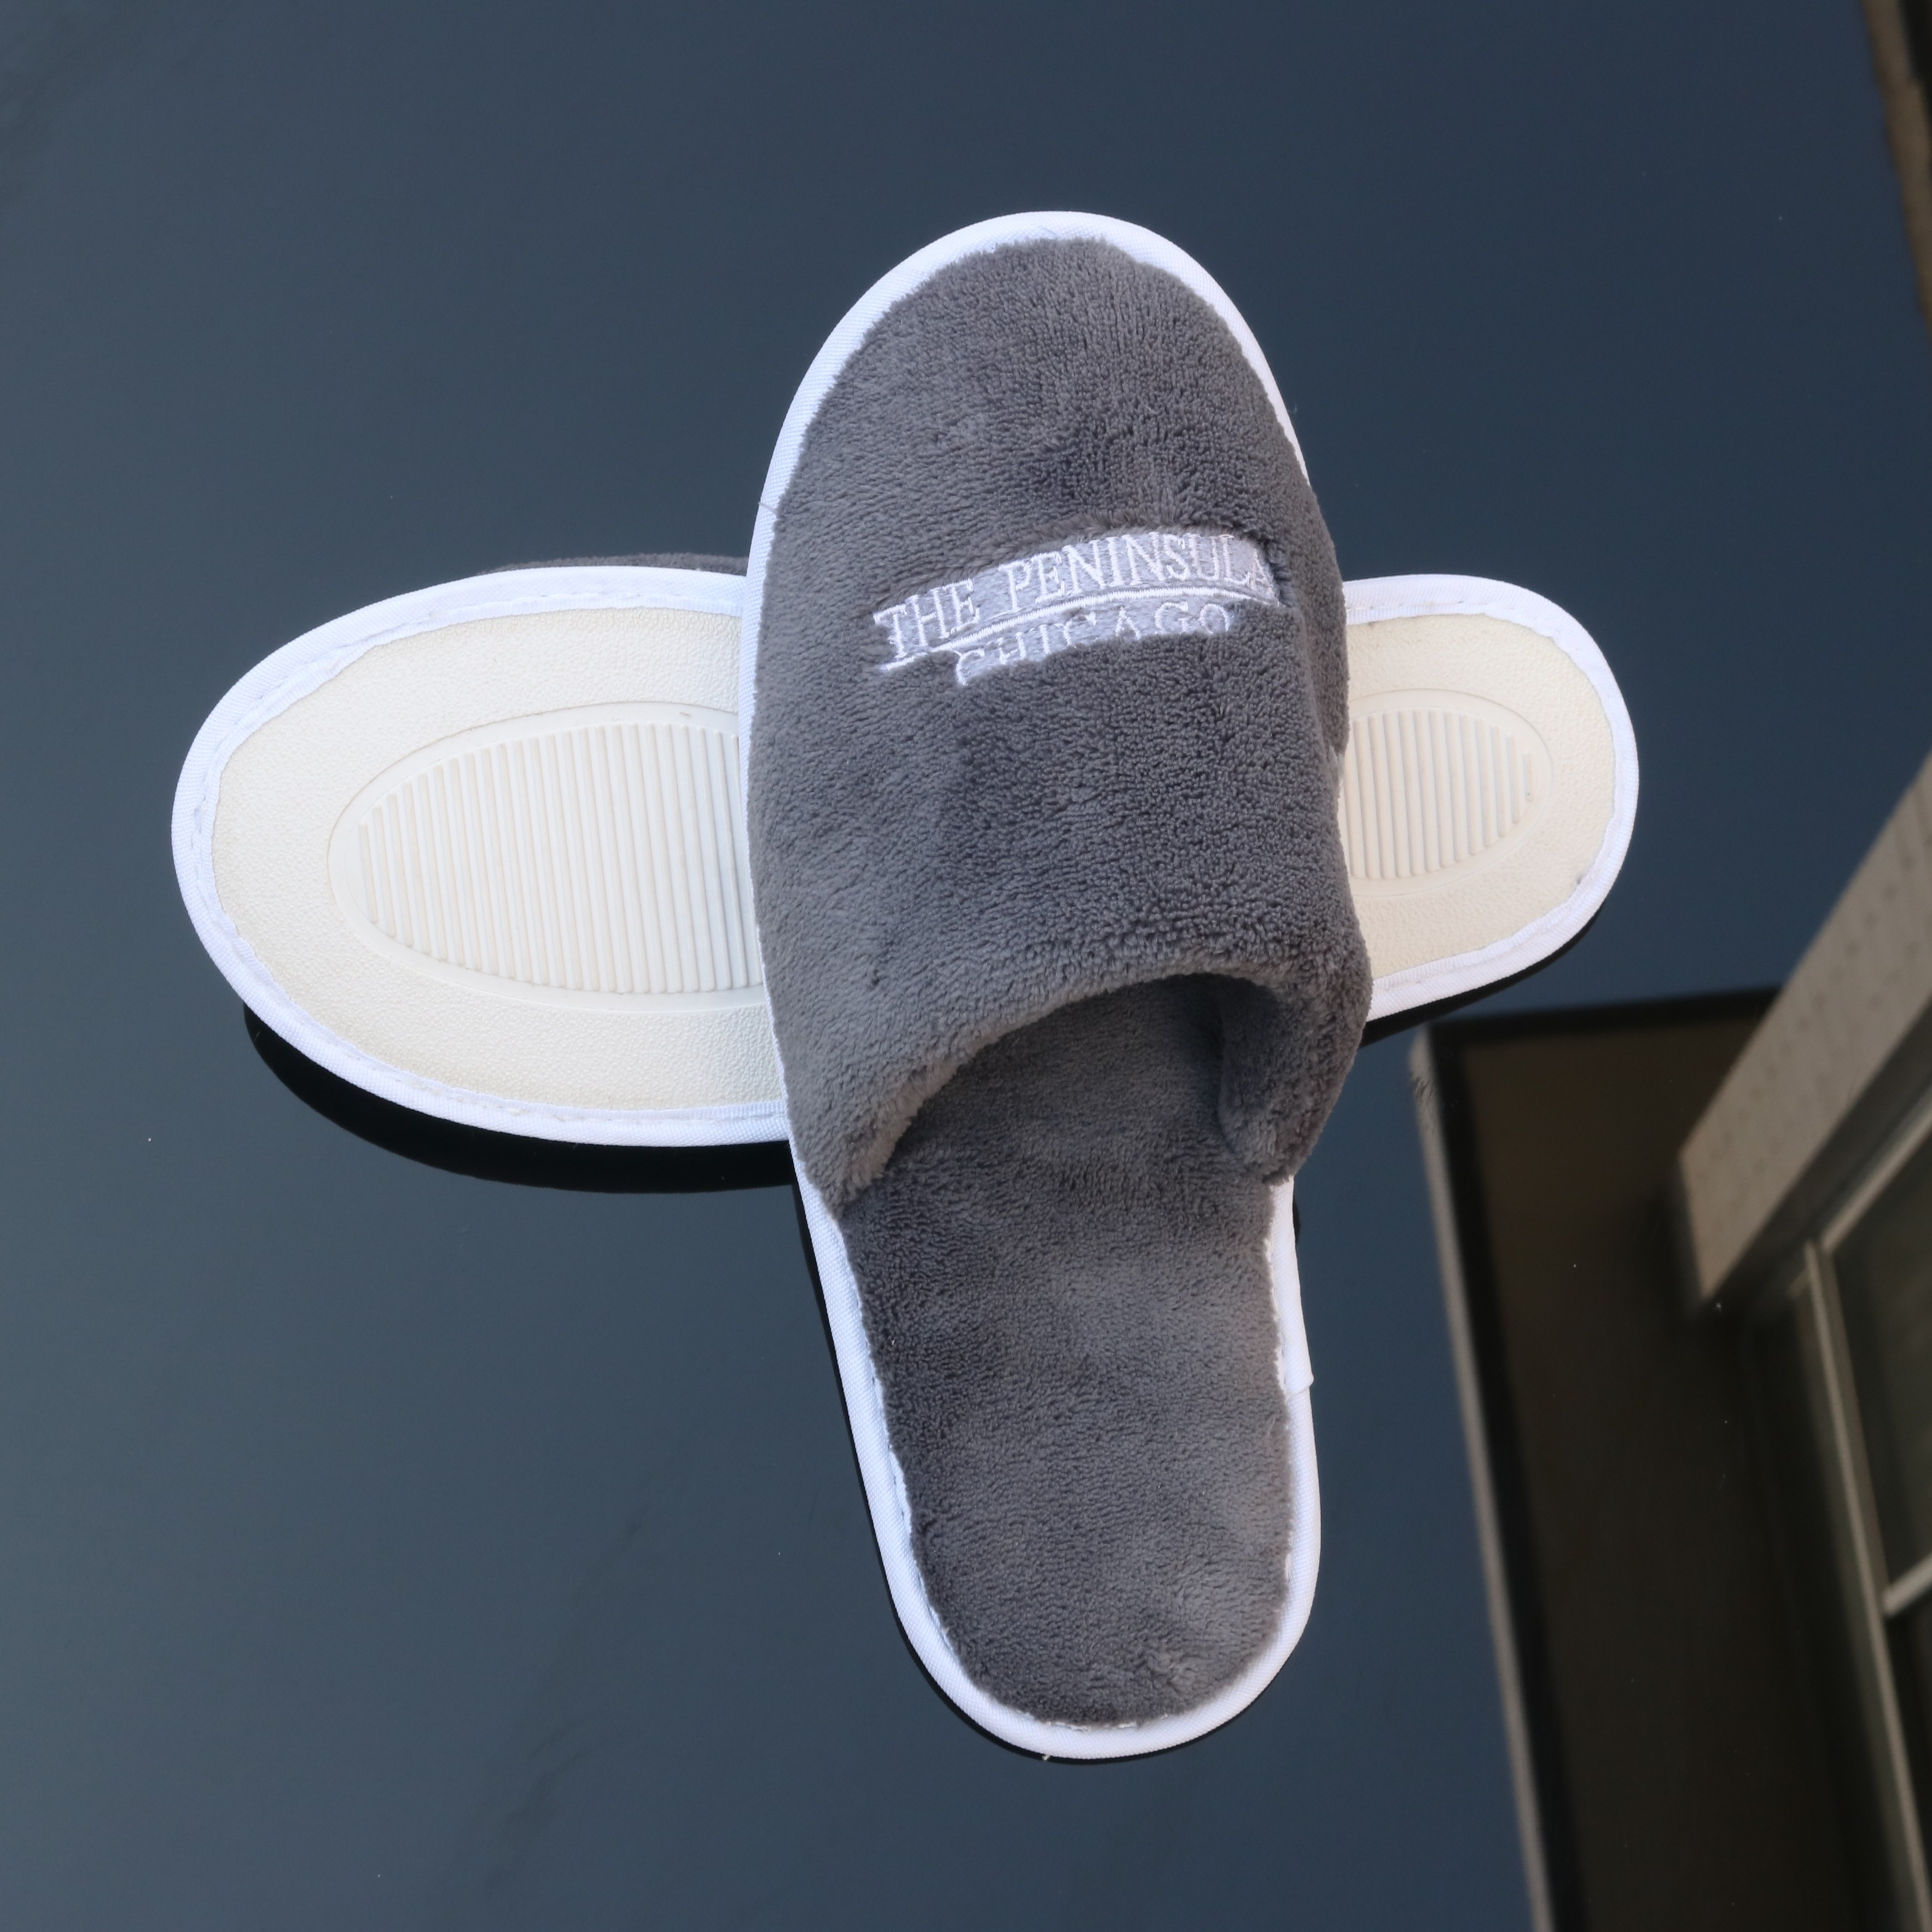 hotel amenities hotel slippers Top quality soft coral fleece slippers for 5 star hotel